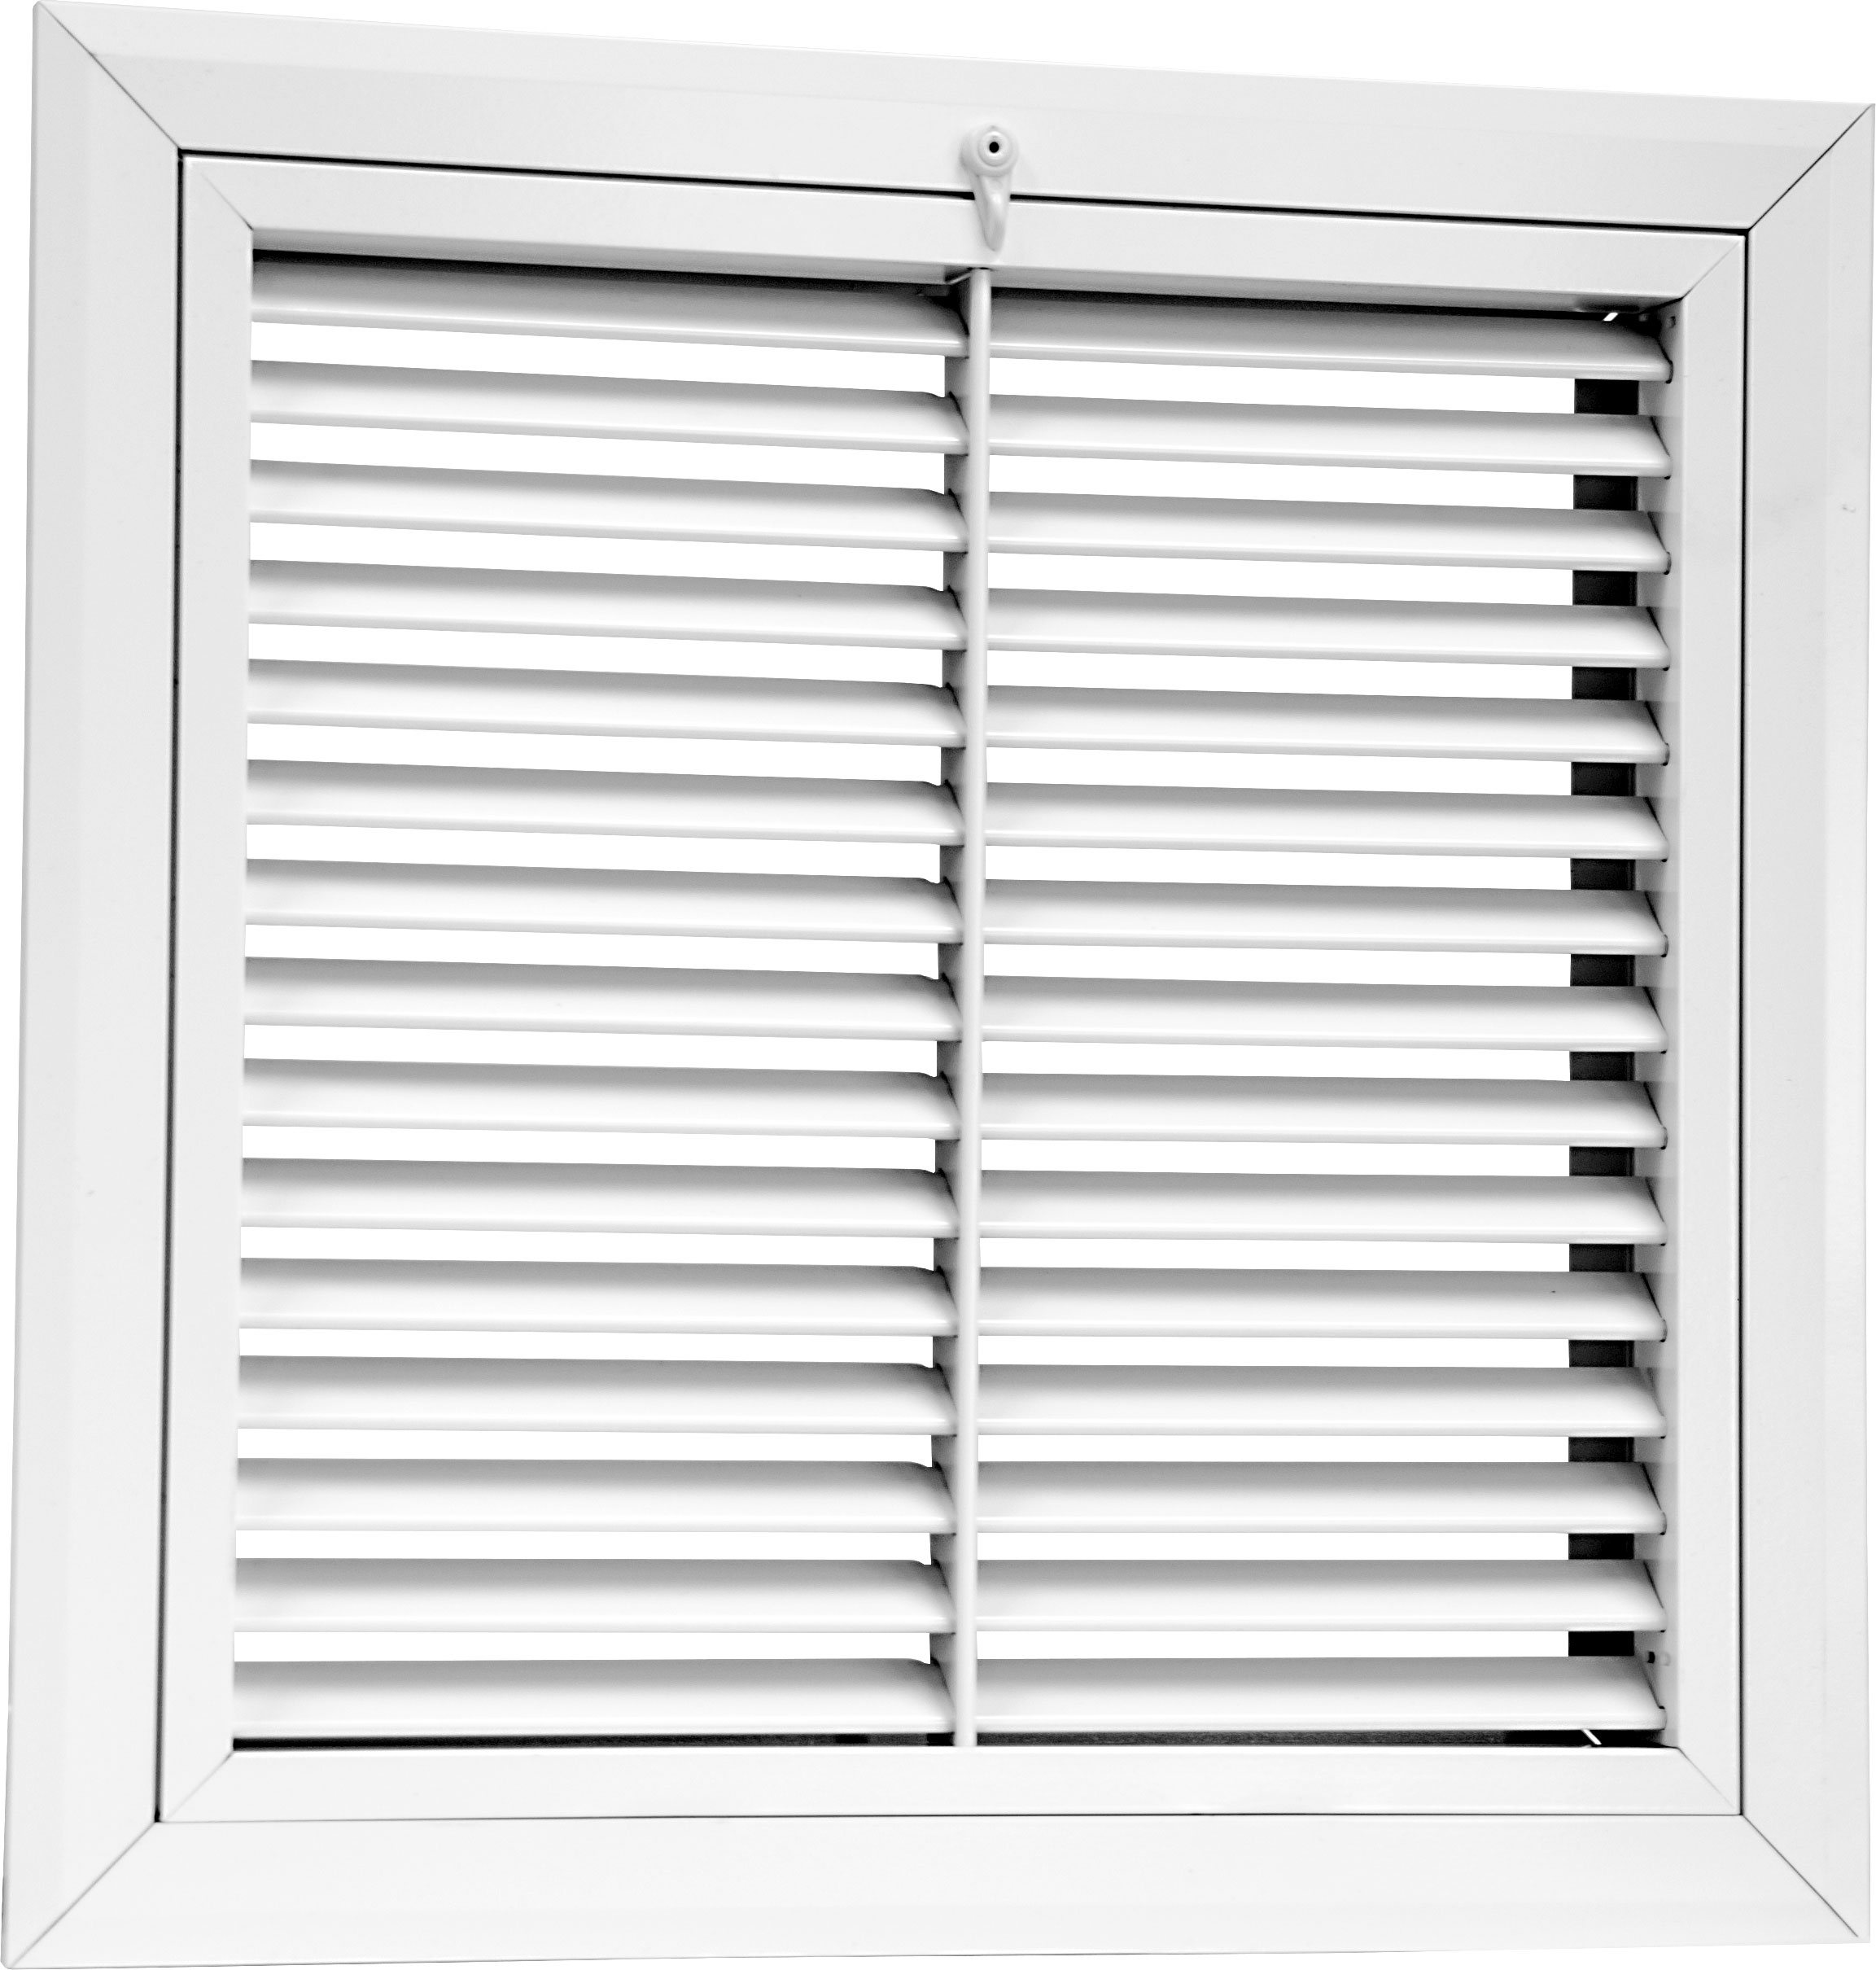 Rhf45 Aluminum Return Air Filter Grille 45 Degree Fixed